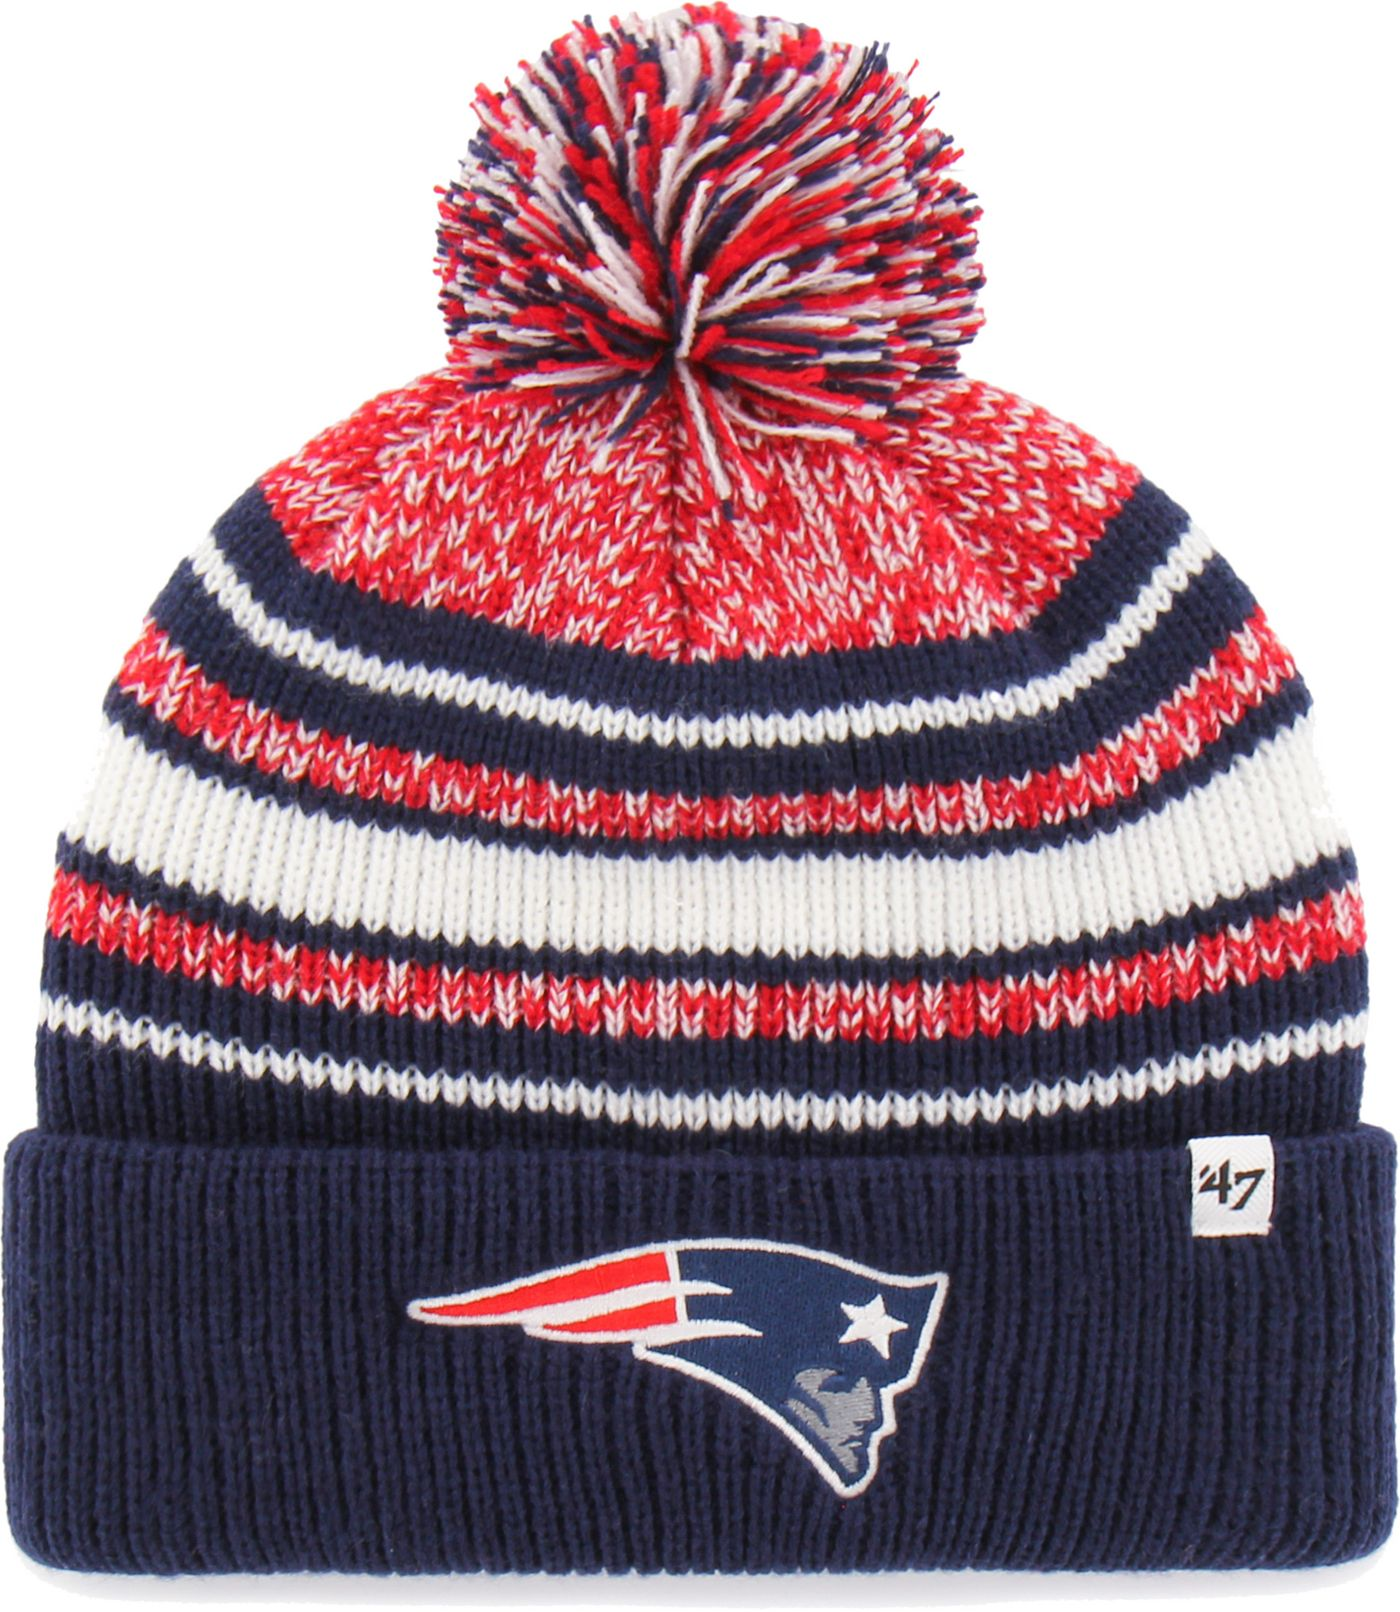 '47 Toddler's New England Patriots Bubbler Navy Knit